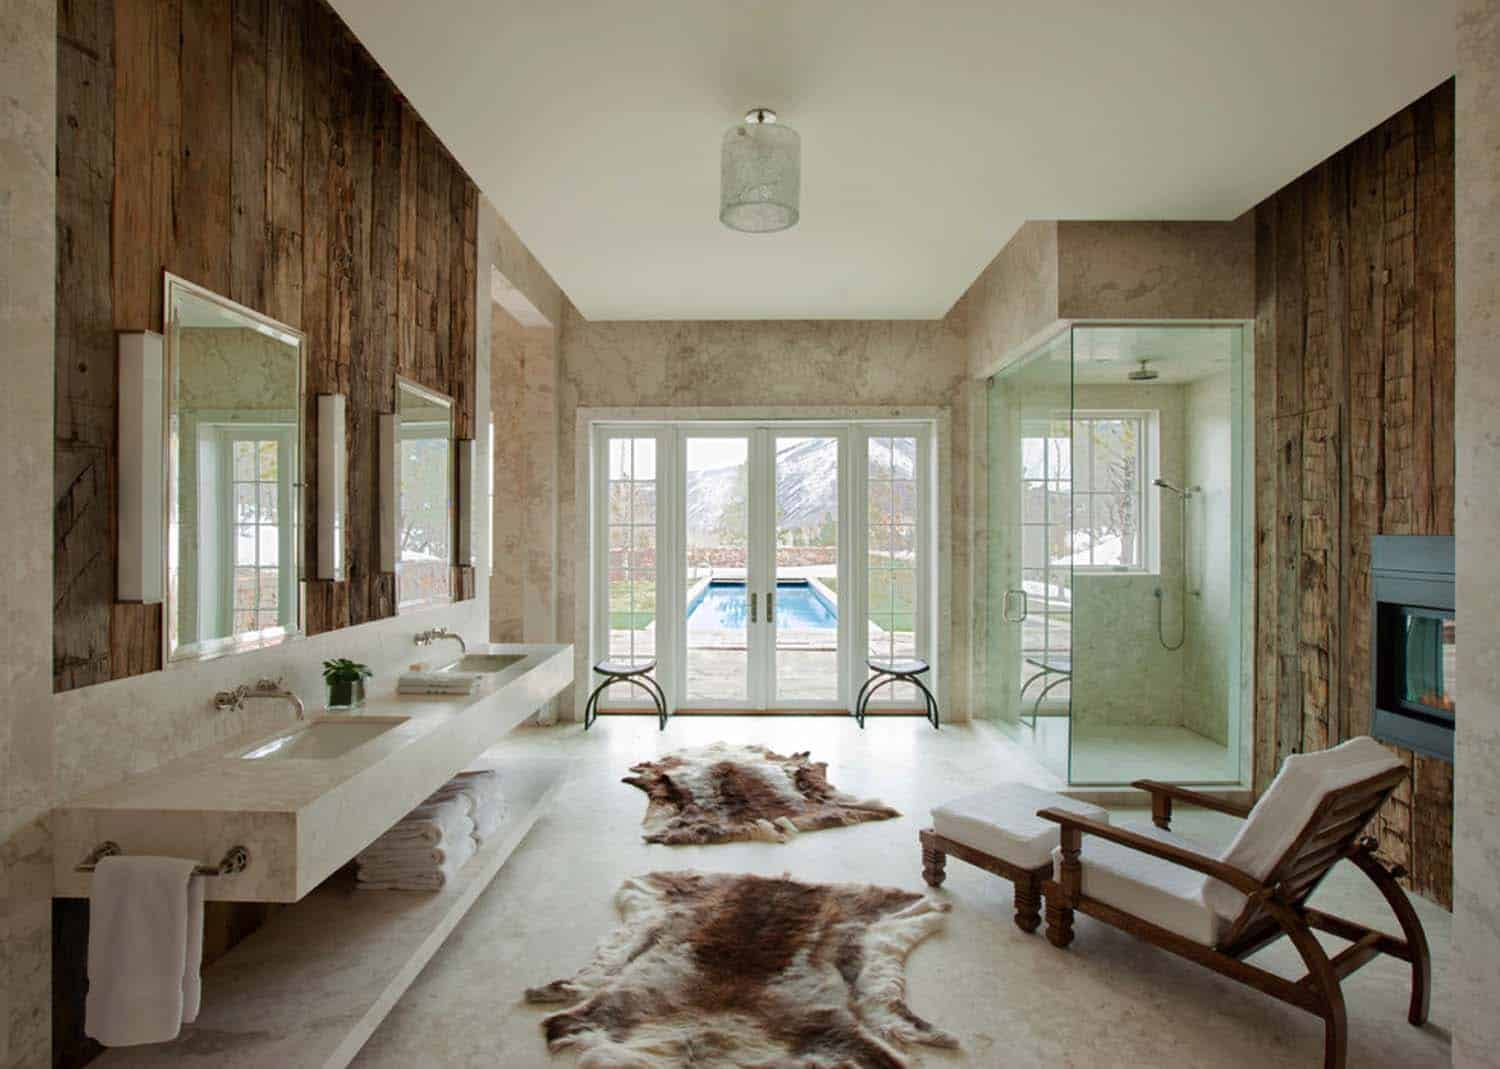 Modern Rustic Mountain Retreat-Frank de Biasi Interiors-16-1 Kindesign